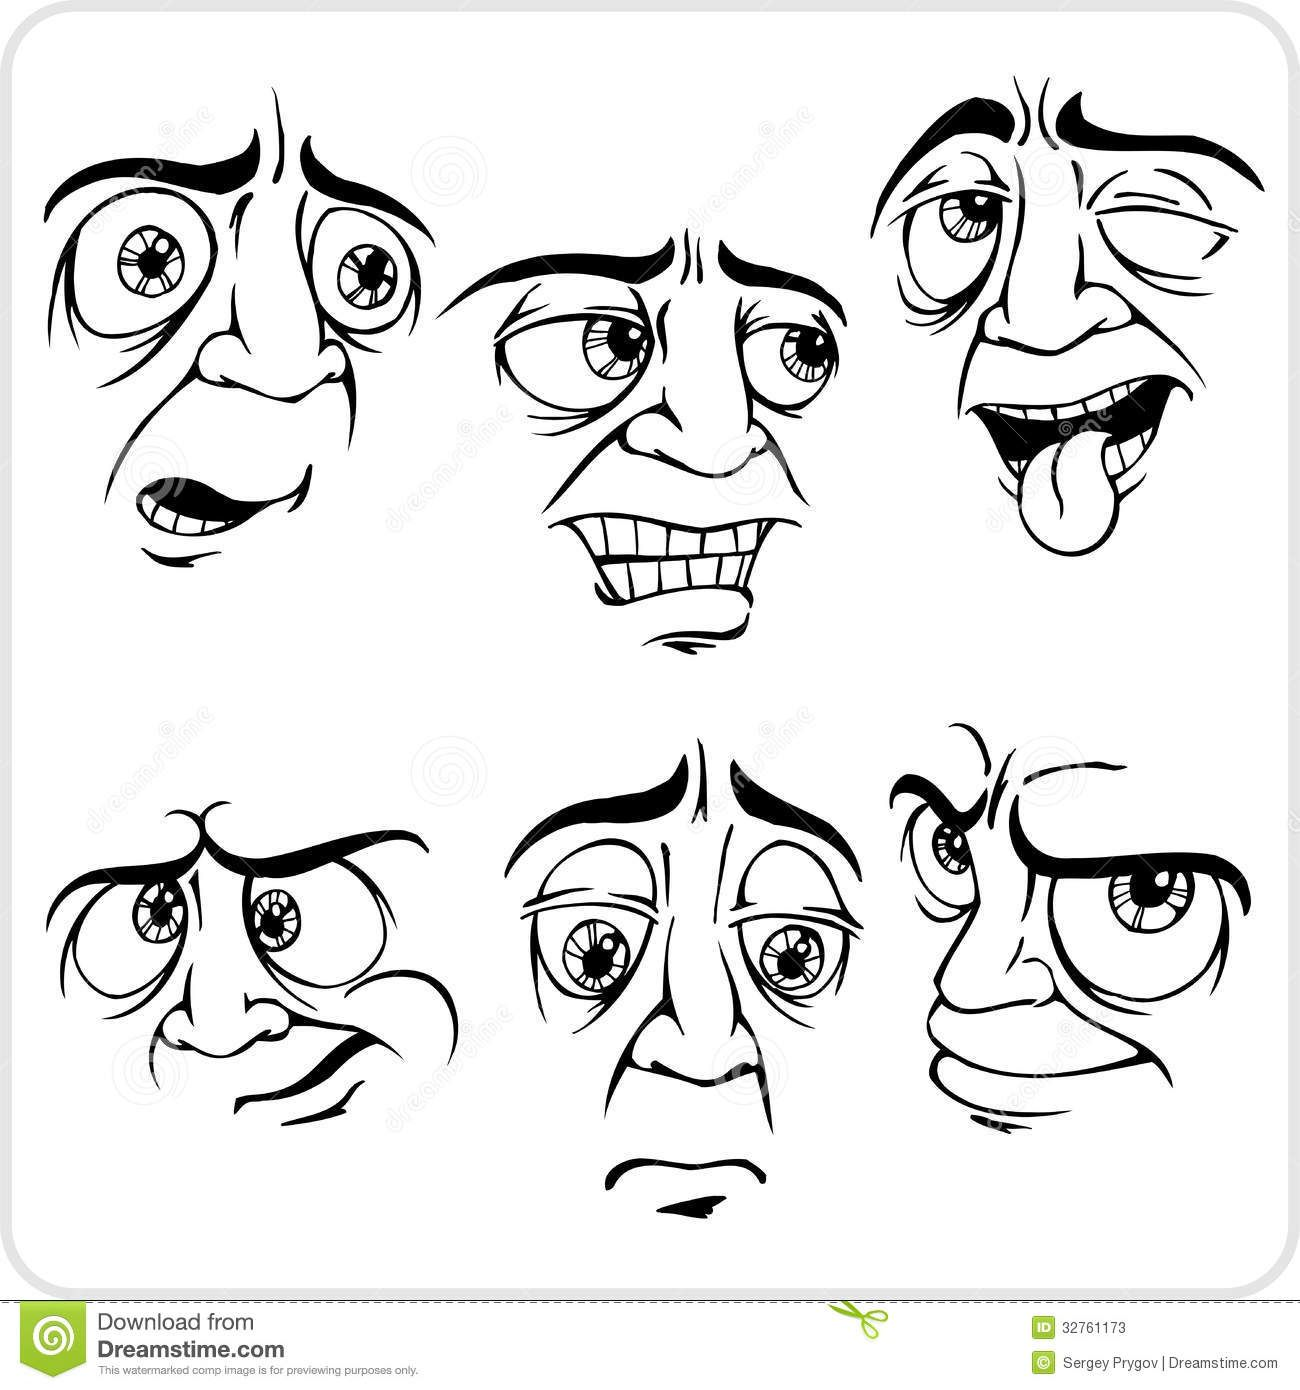 vector facial expressions - Google Search